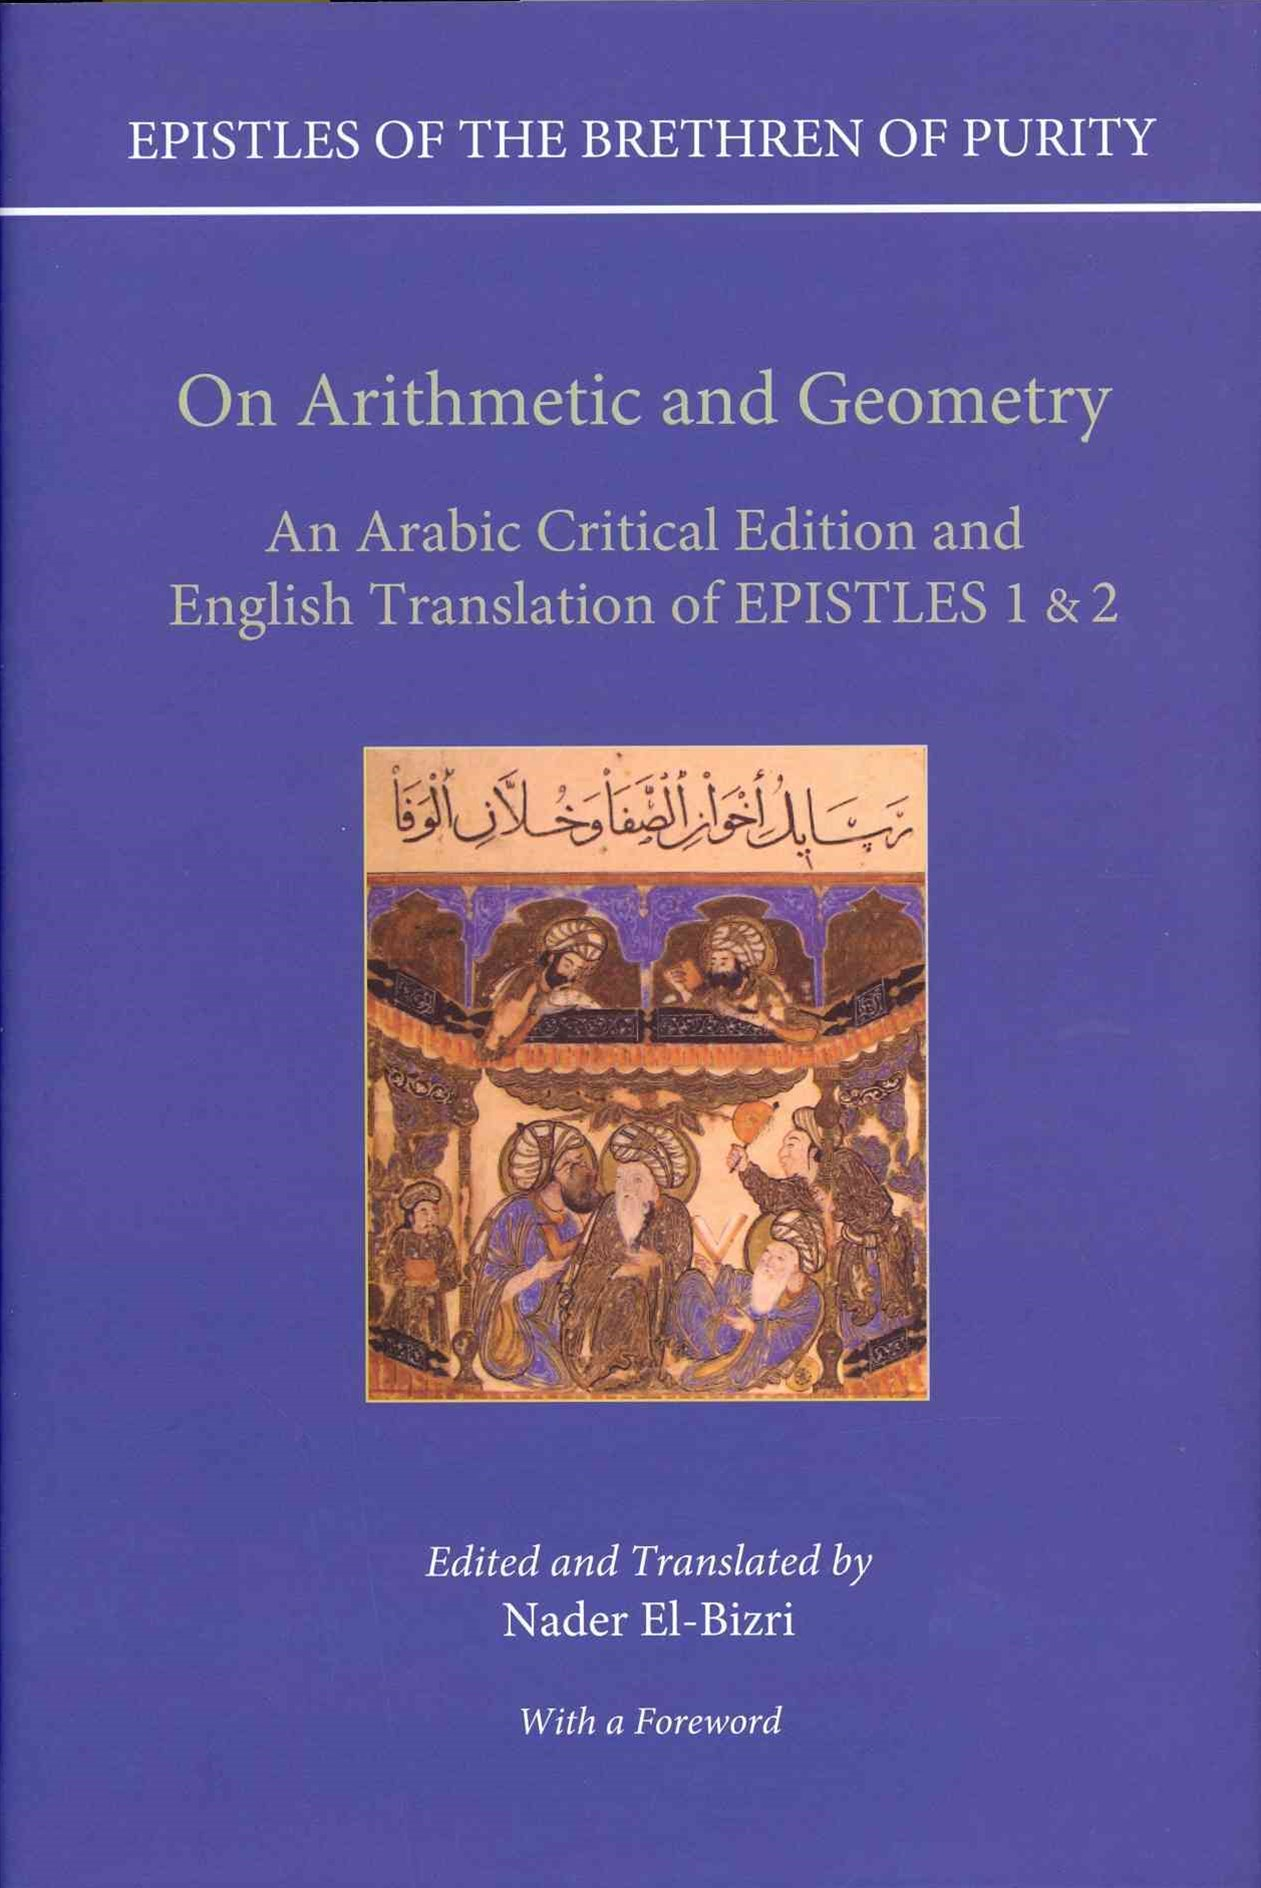 On Arithmetic & Geometry